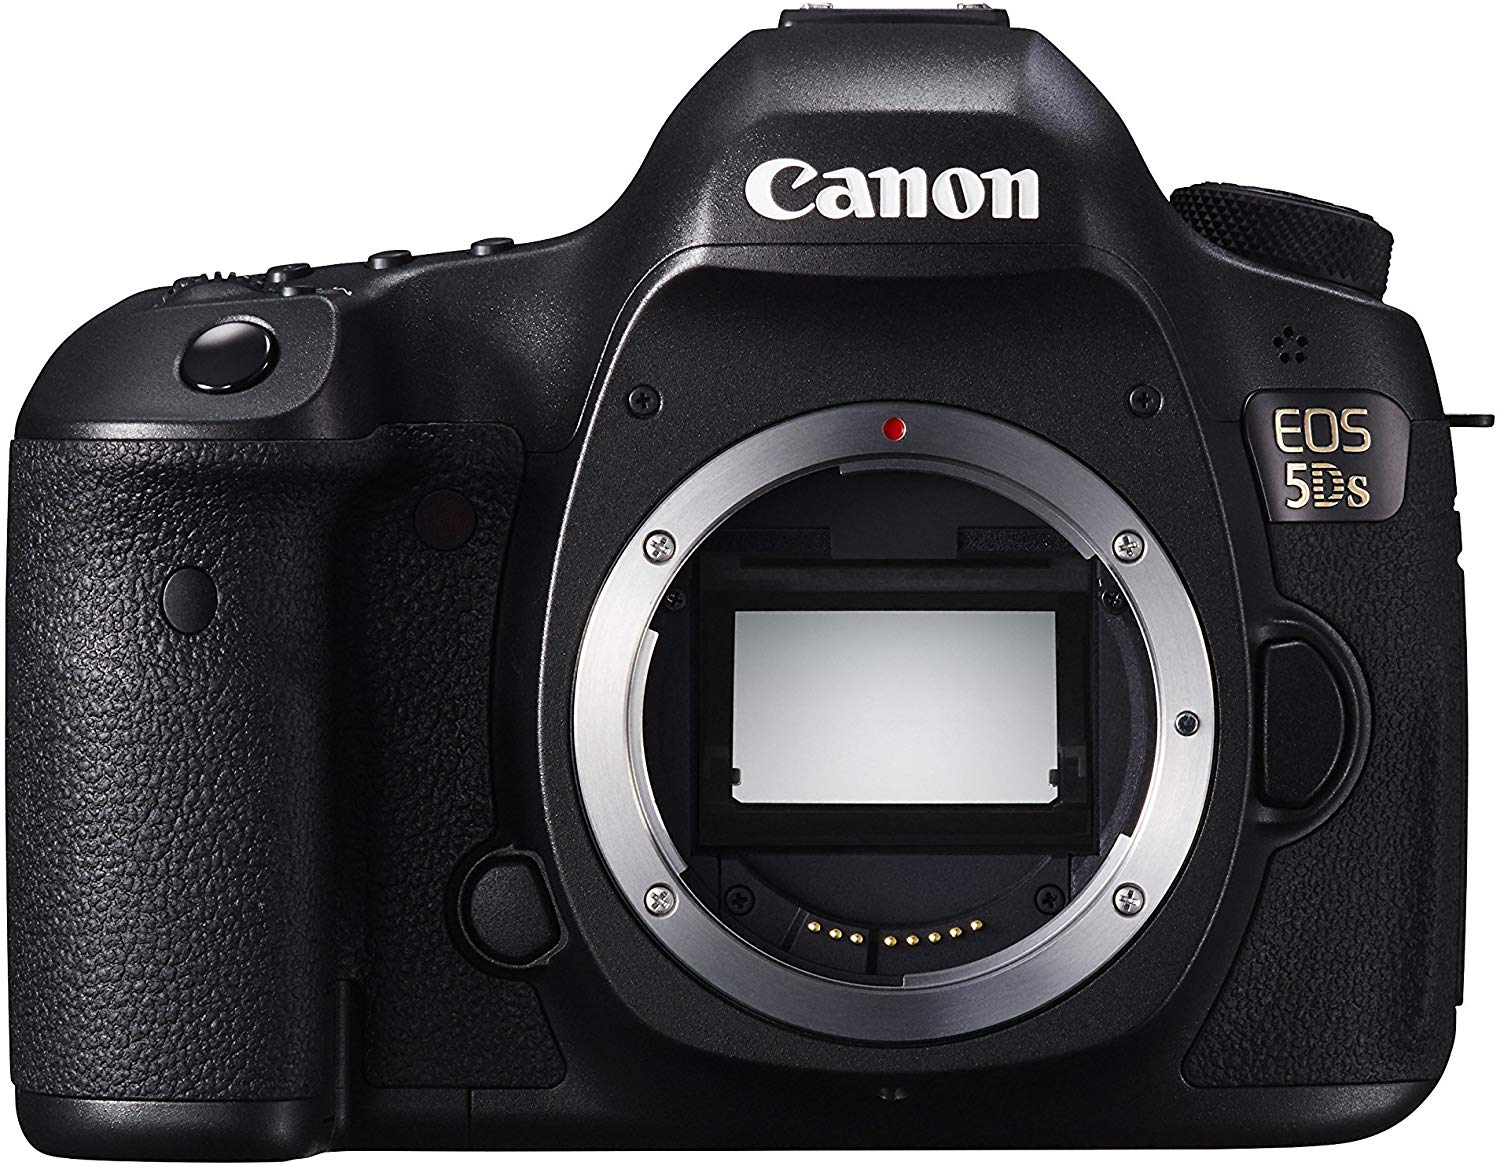 Canon EOS 5DS black friday camera deals